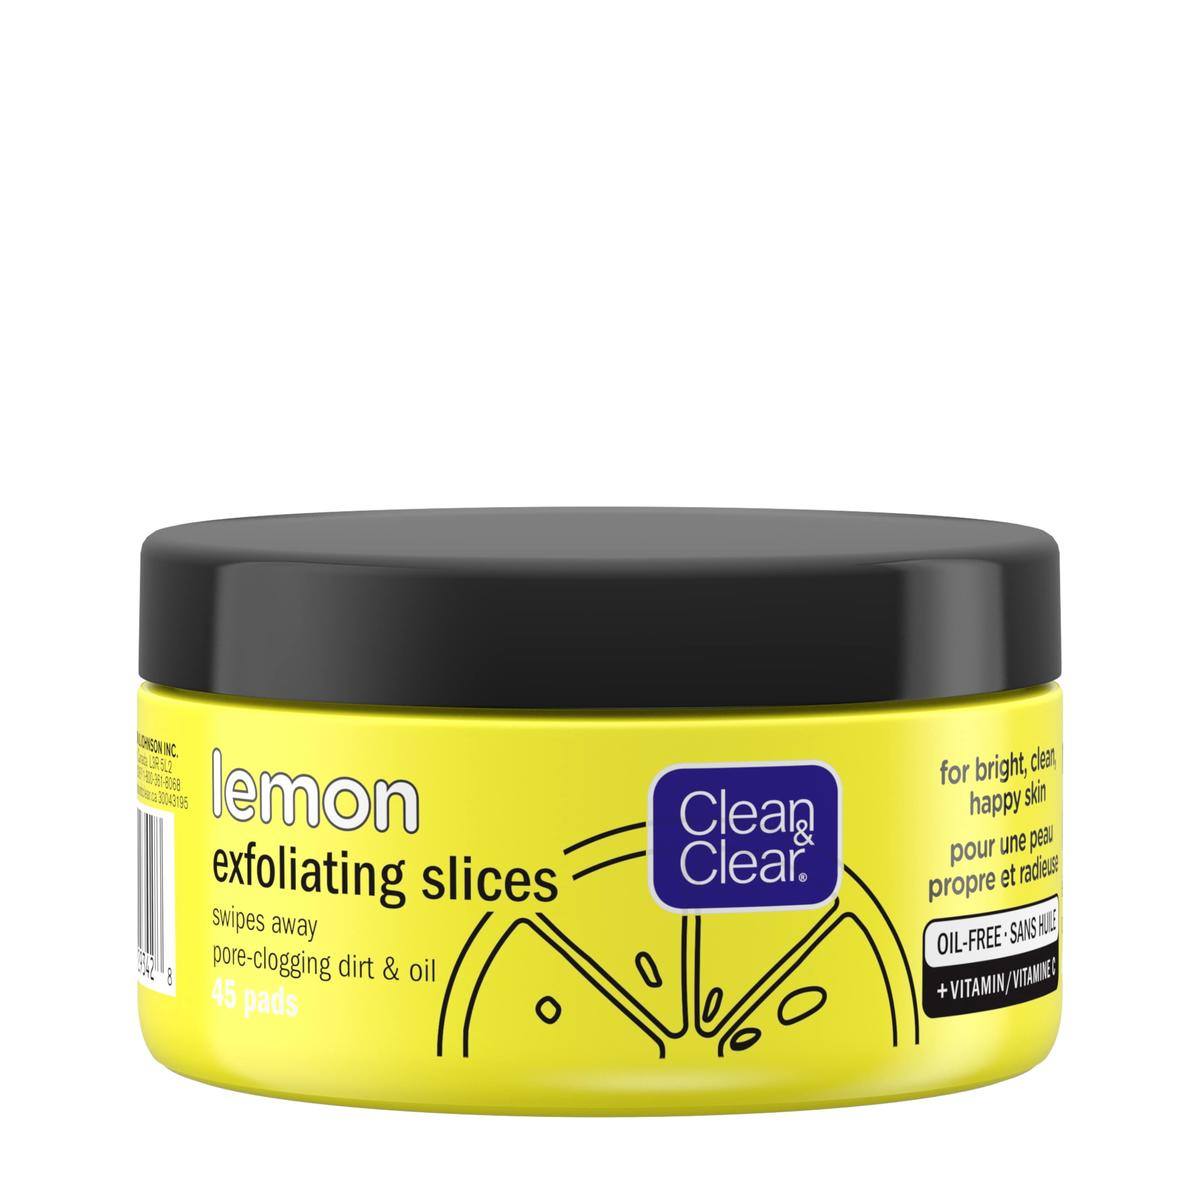 Clean and Clear lemon exfoliating slices in yellow tub